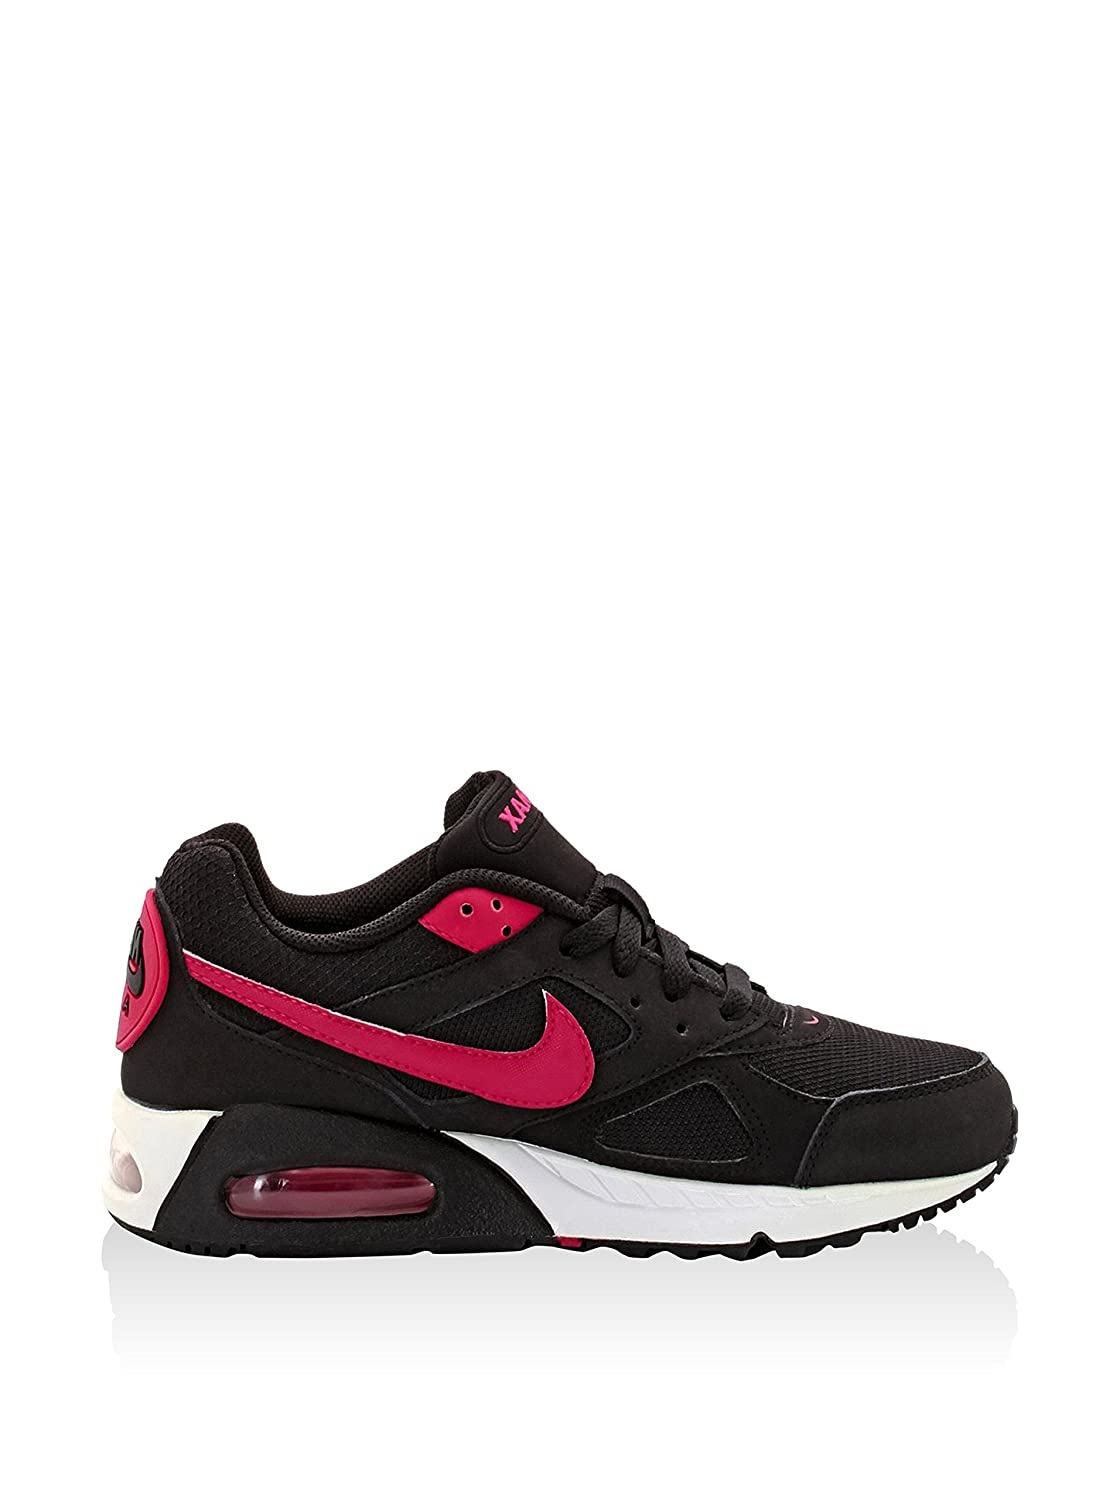 Nike Nike Nike Damen W Air Max Ivo Low-top 678d57